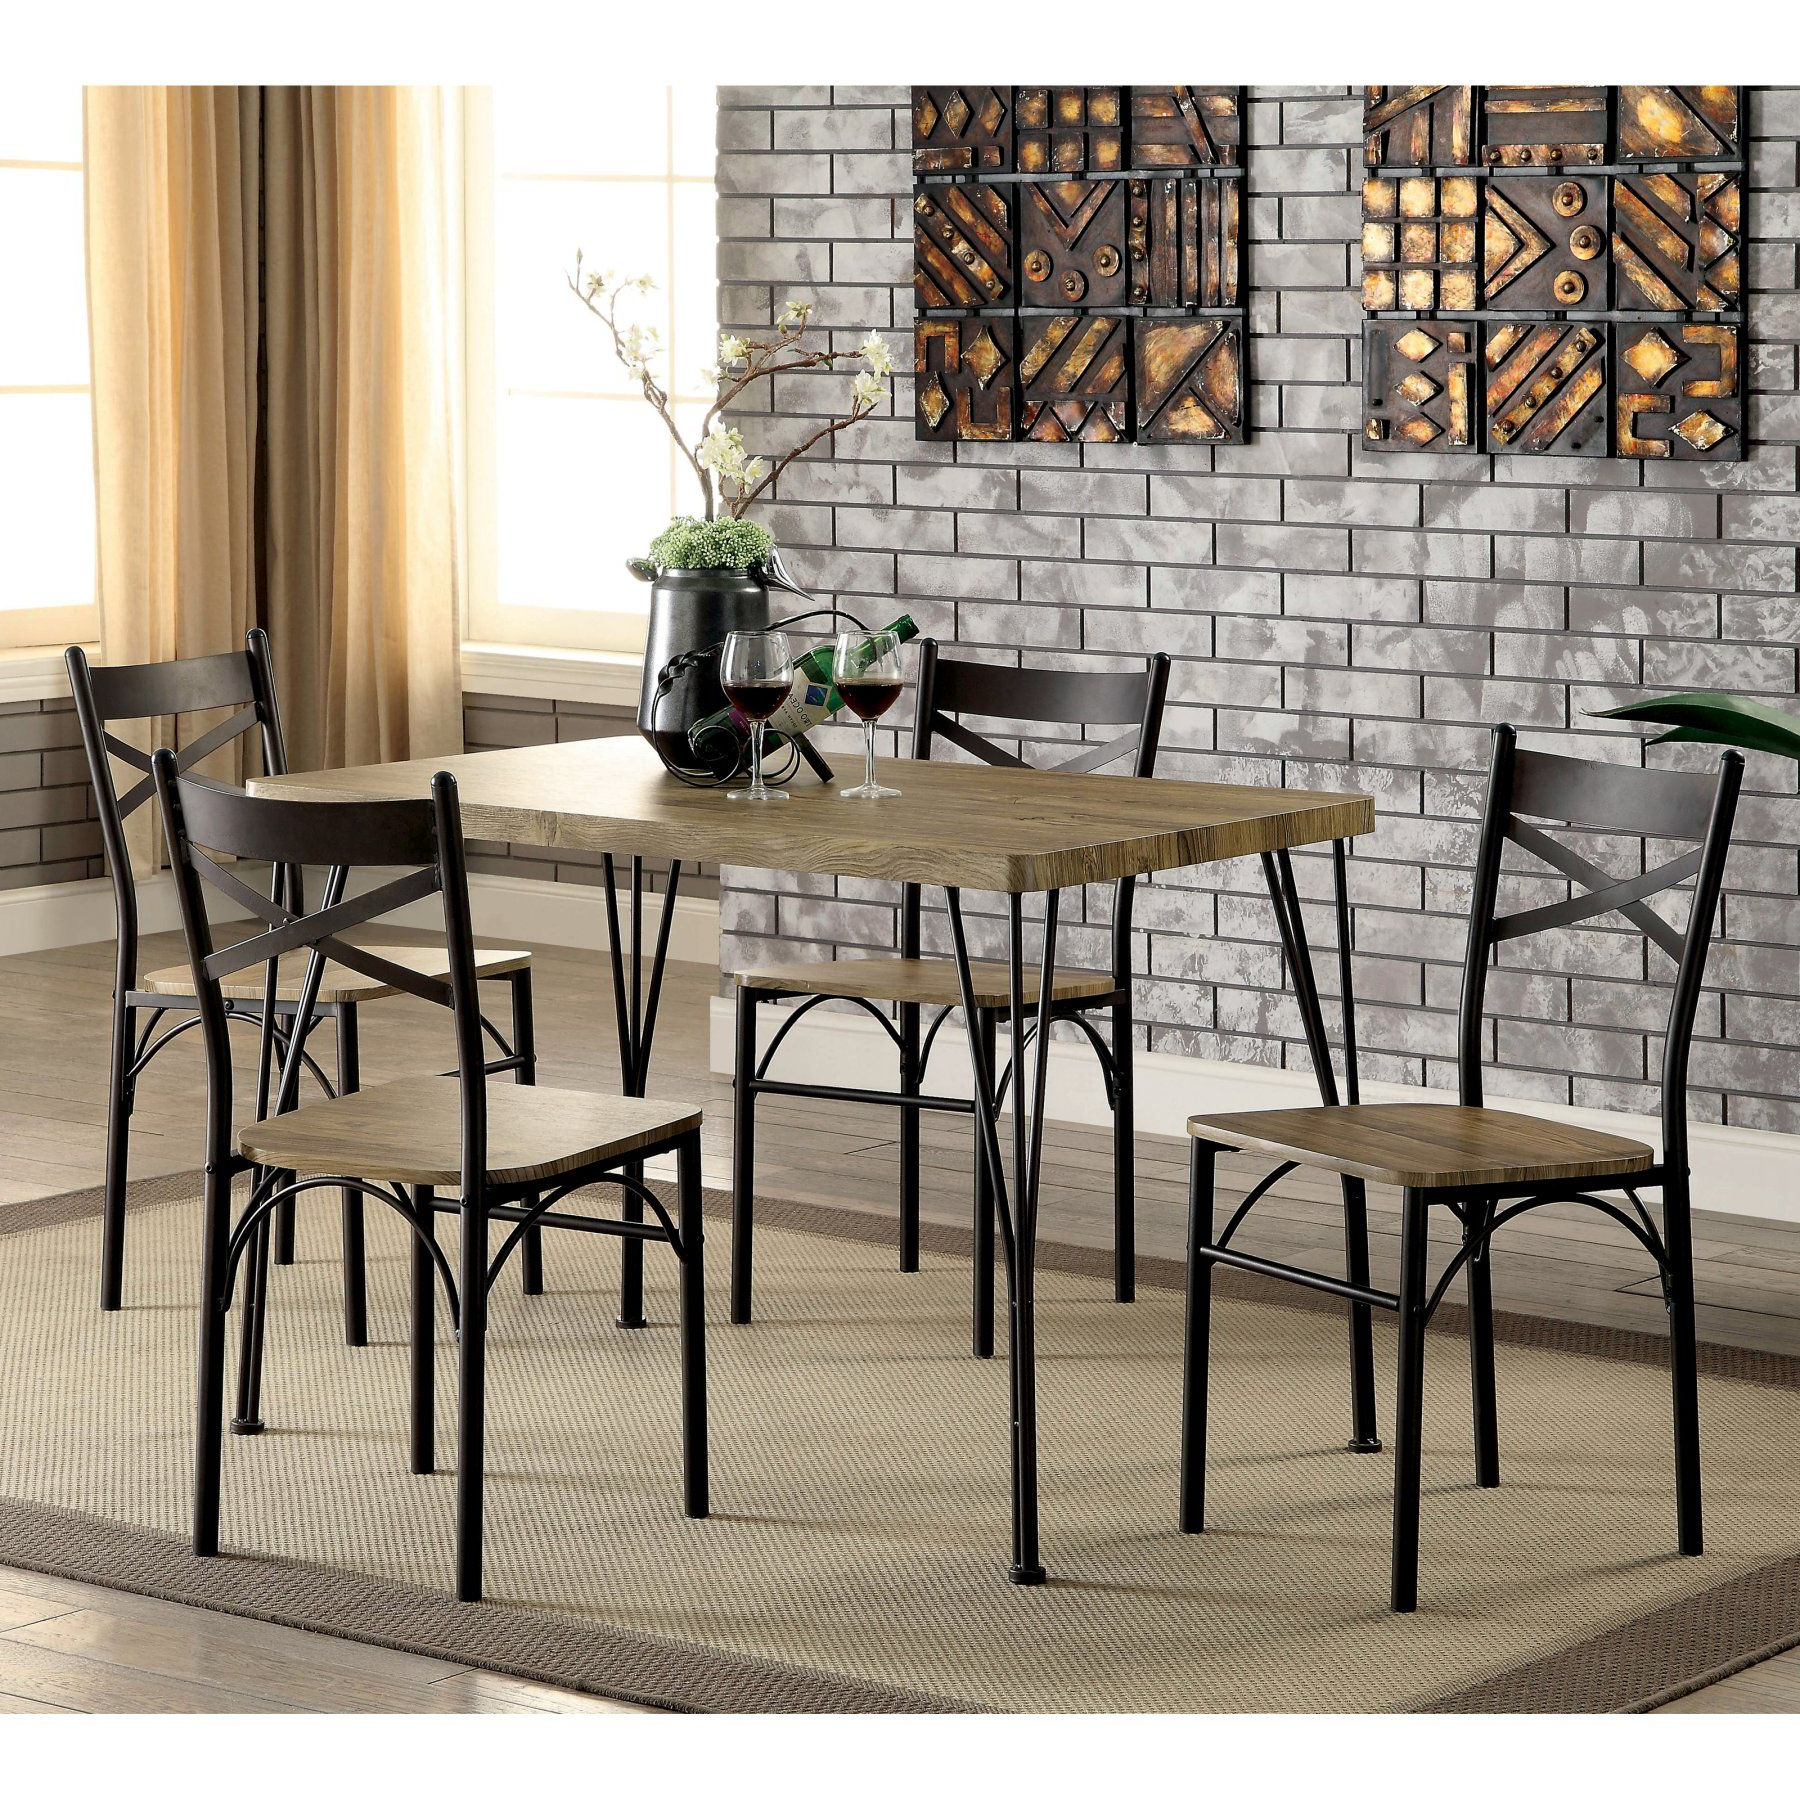 Furniture Of America Amonica 5 Piece Casual Dining Set En 2019 Pertaining To 2019 Winsted 4 Piece Counter Height Dining Sets (View 20 of 25)